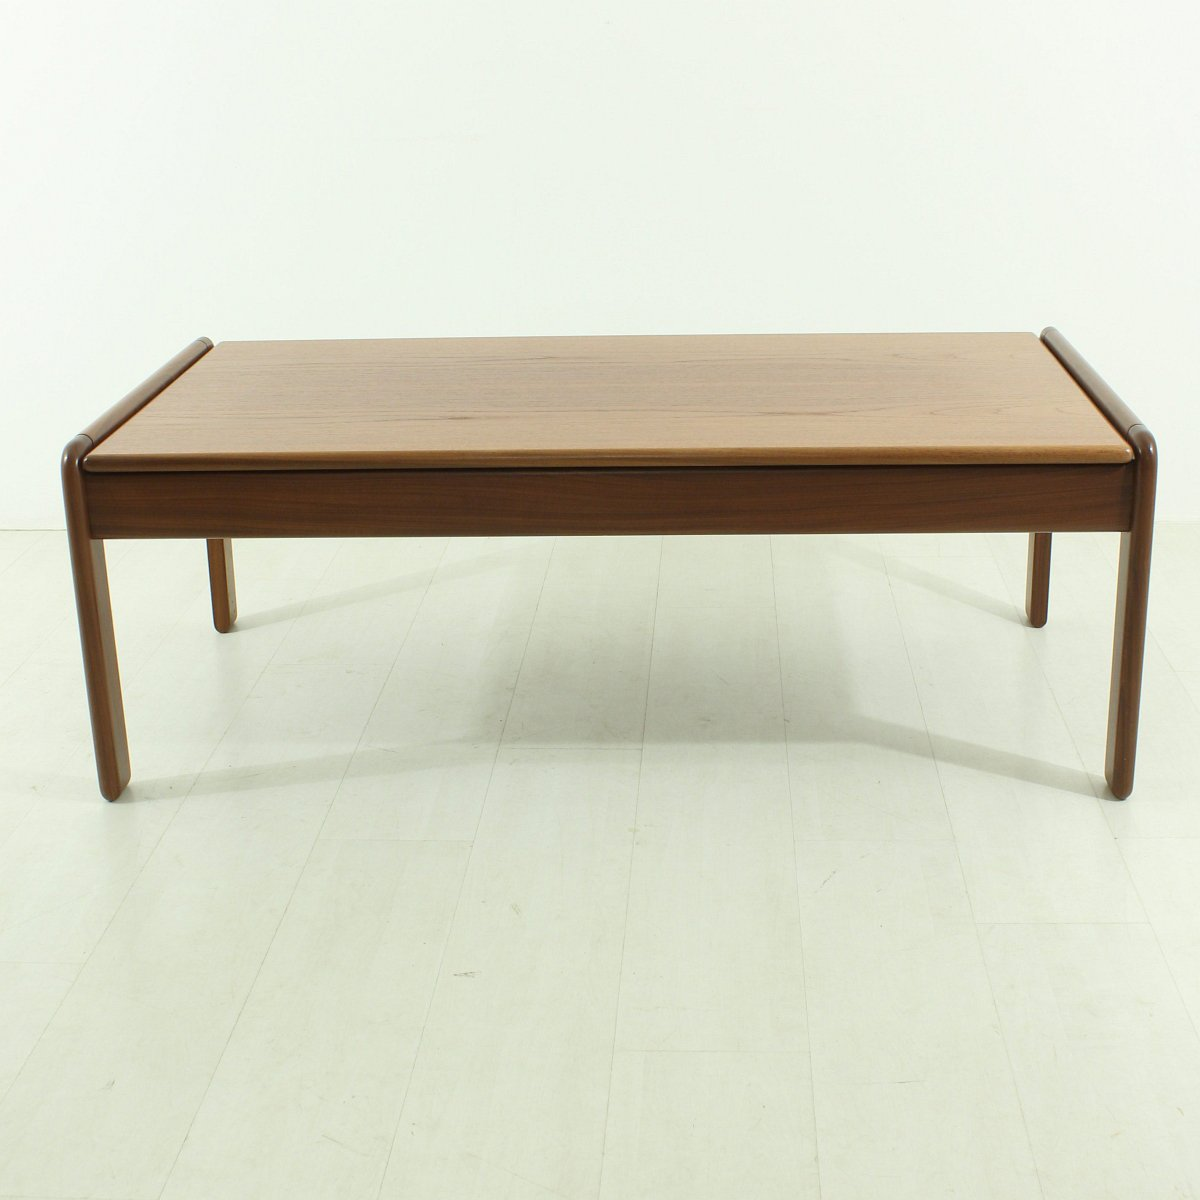 Scandinavian Teak Coffee Table: Scandinavian Teak Coffee Table, 1960s For Sale At Pamono